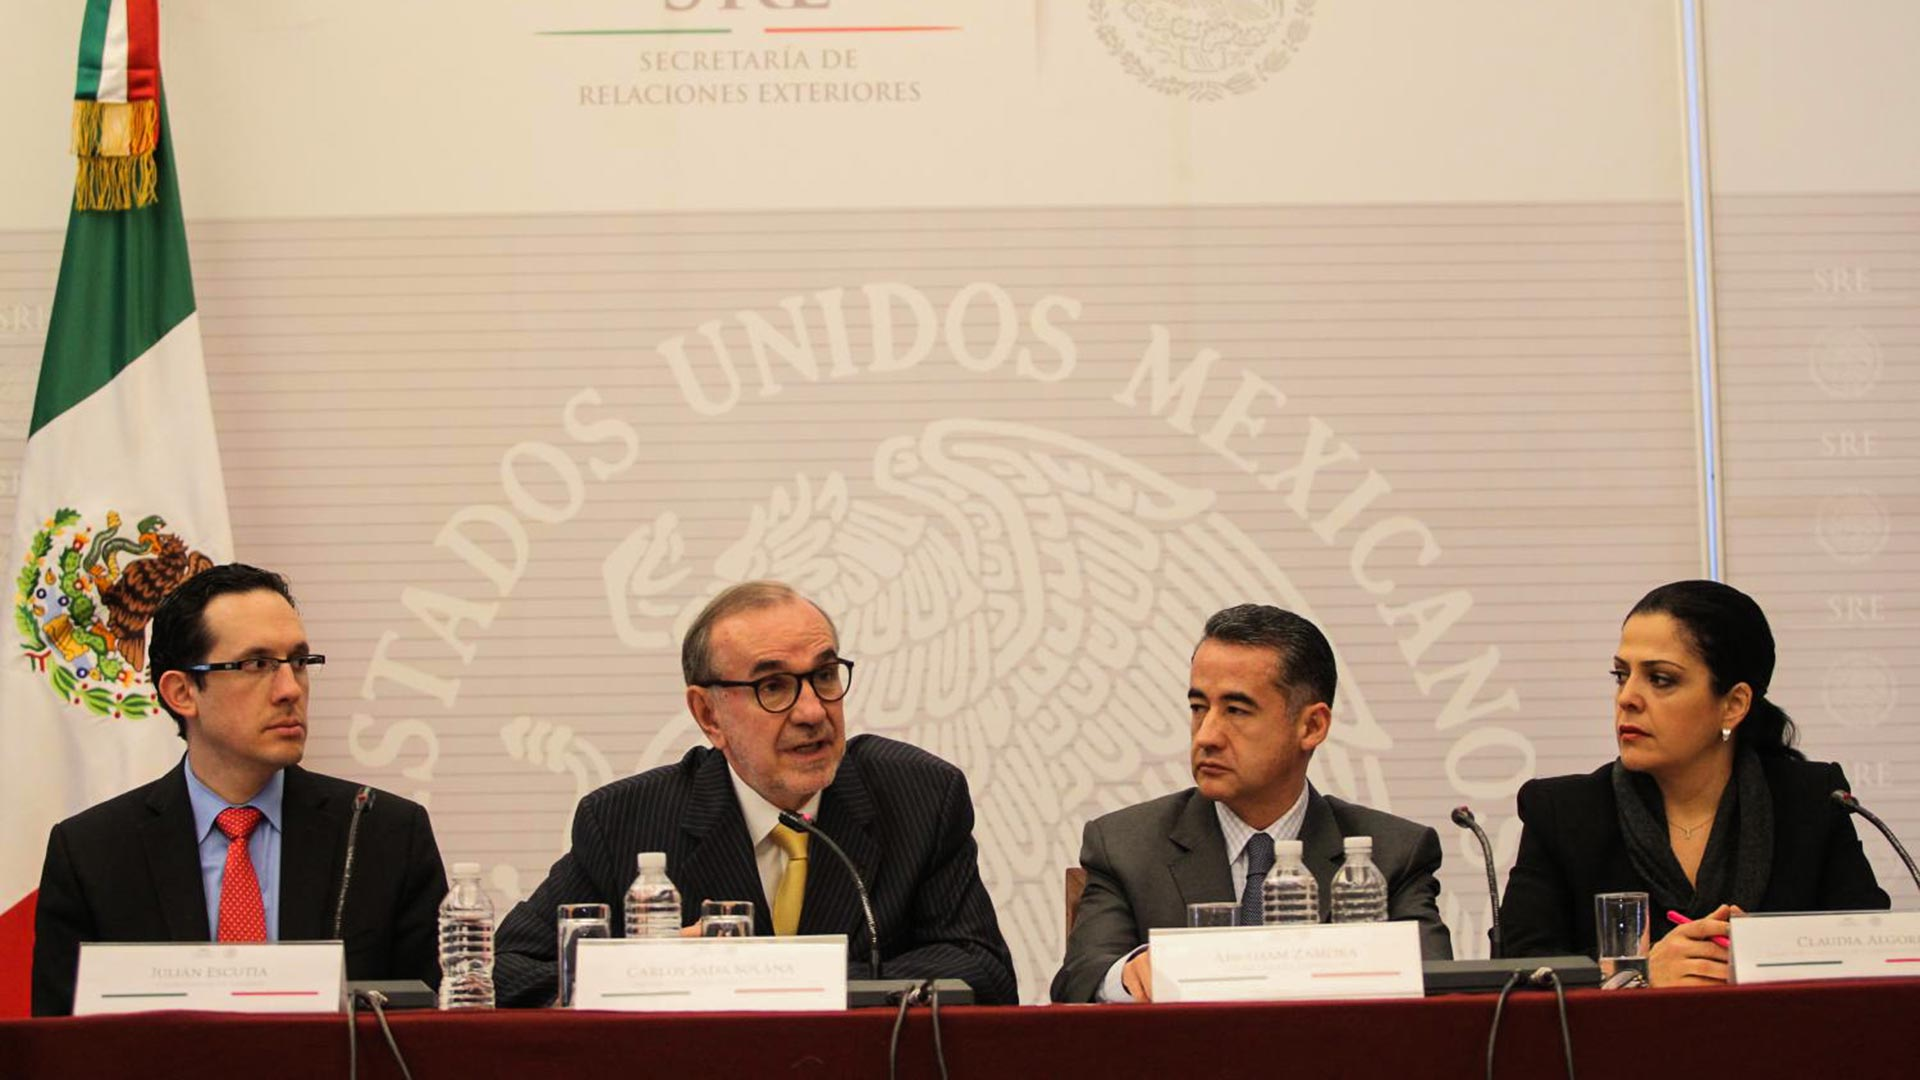 From left, Julian Escutia, chief adviser to the Mexican foreign relations undersecretary for North America; Carlos Sada, undersecretary for North America; Abraham Sonora, chief of staff for the secretary; and Claudia Algorri, spokeswoman.